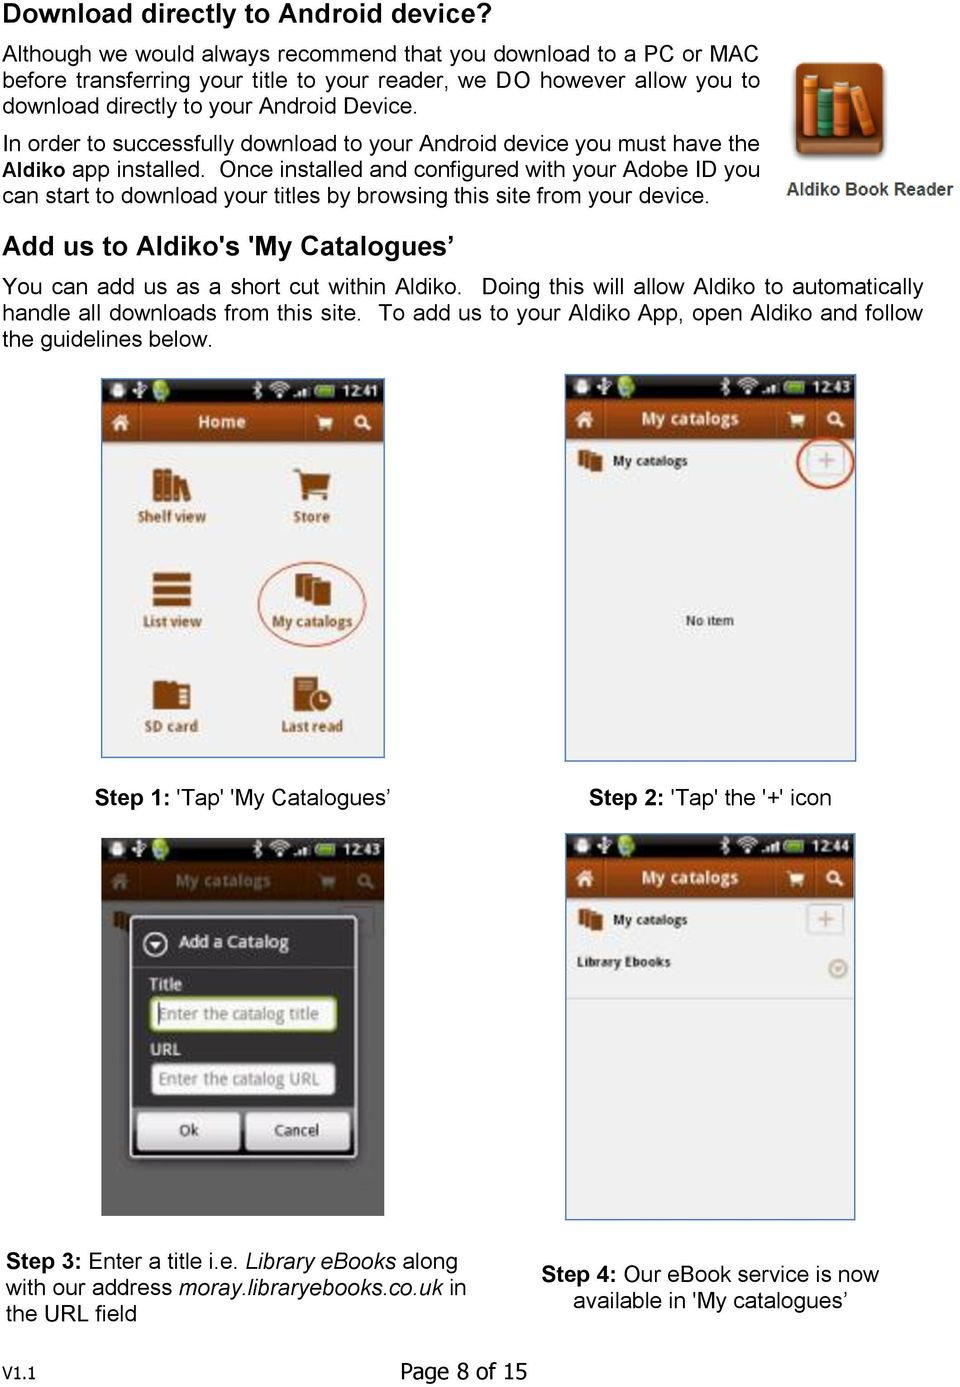 In order to successfully download to your Android device you must have the Aldiko app installed.